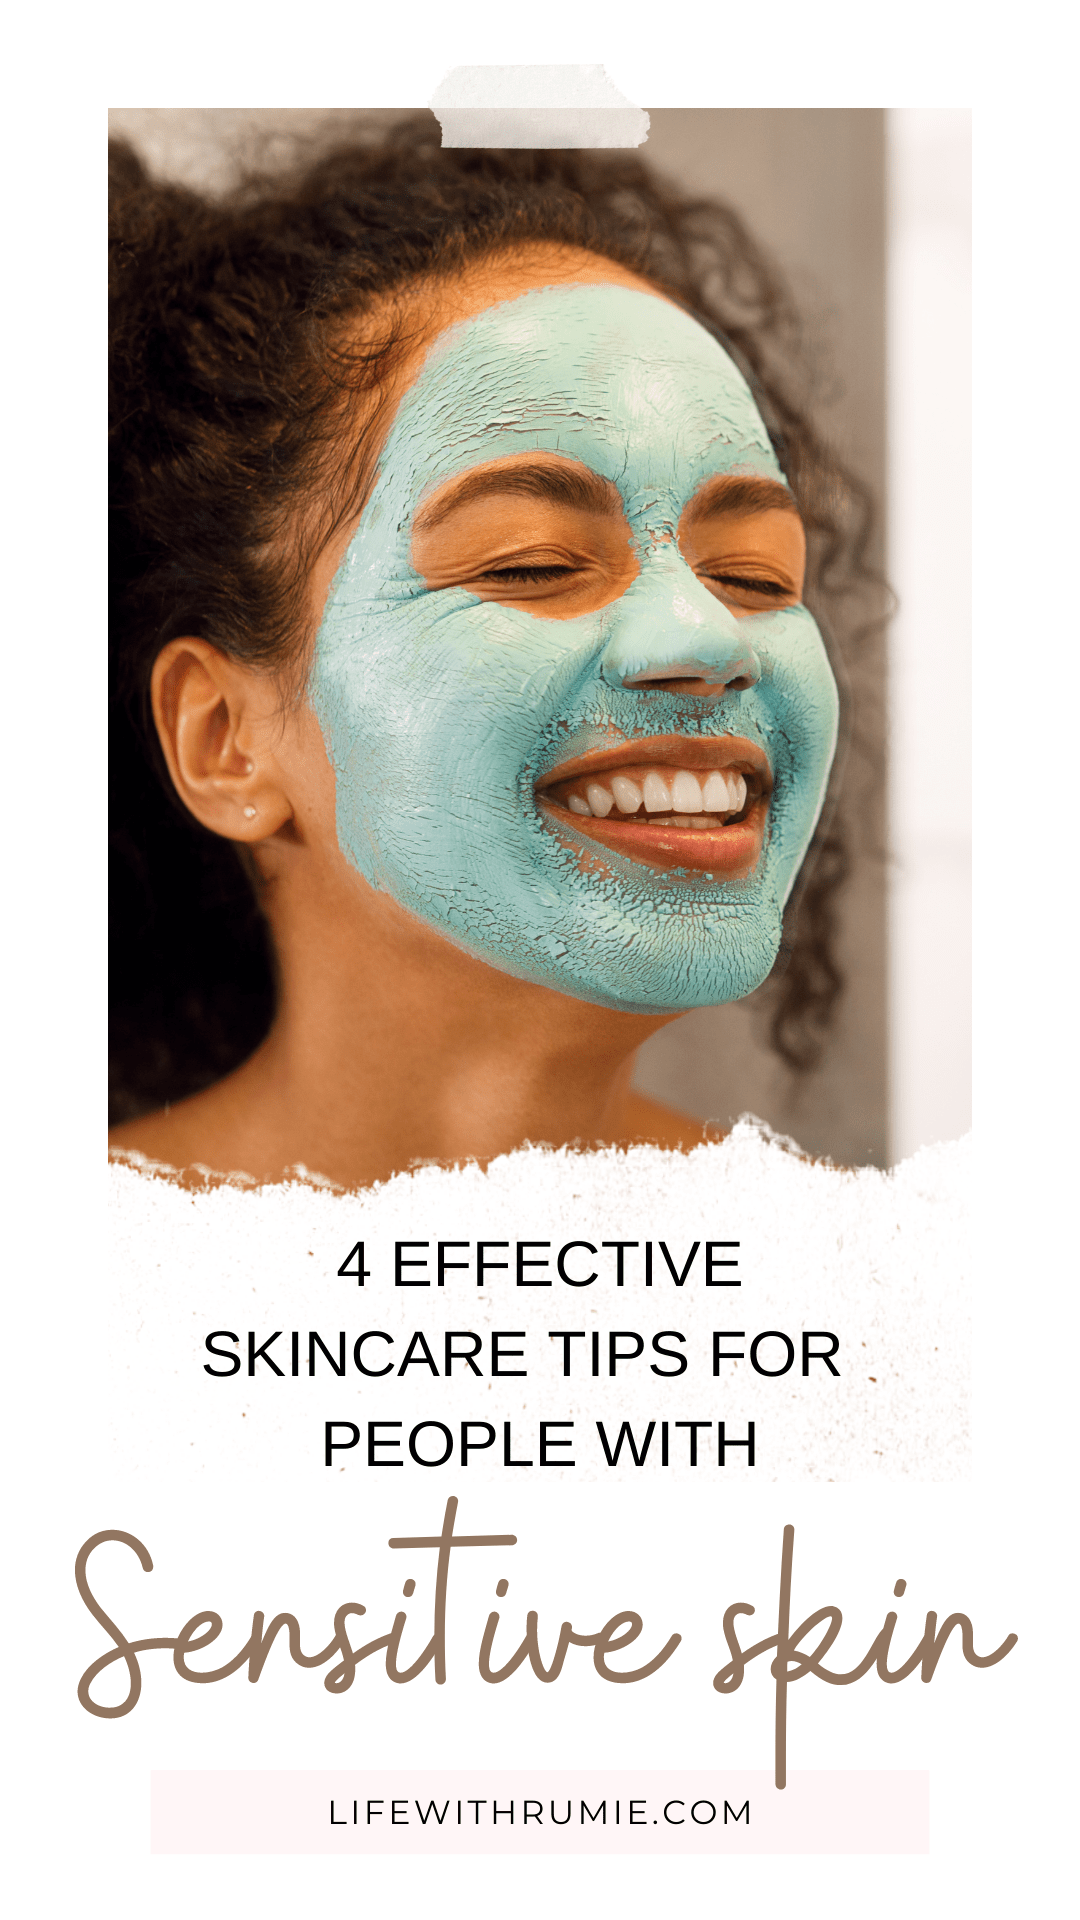 skin care tips for people with sensitive skin